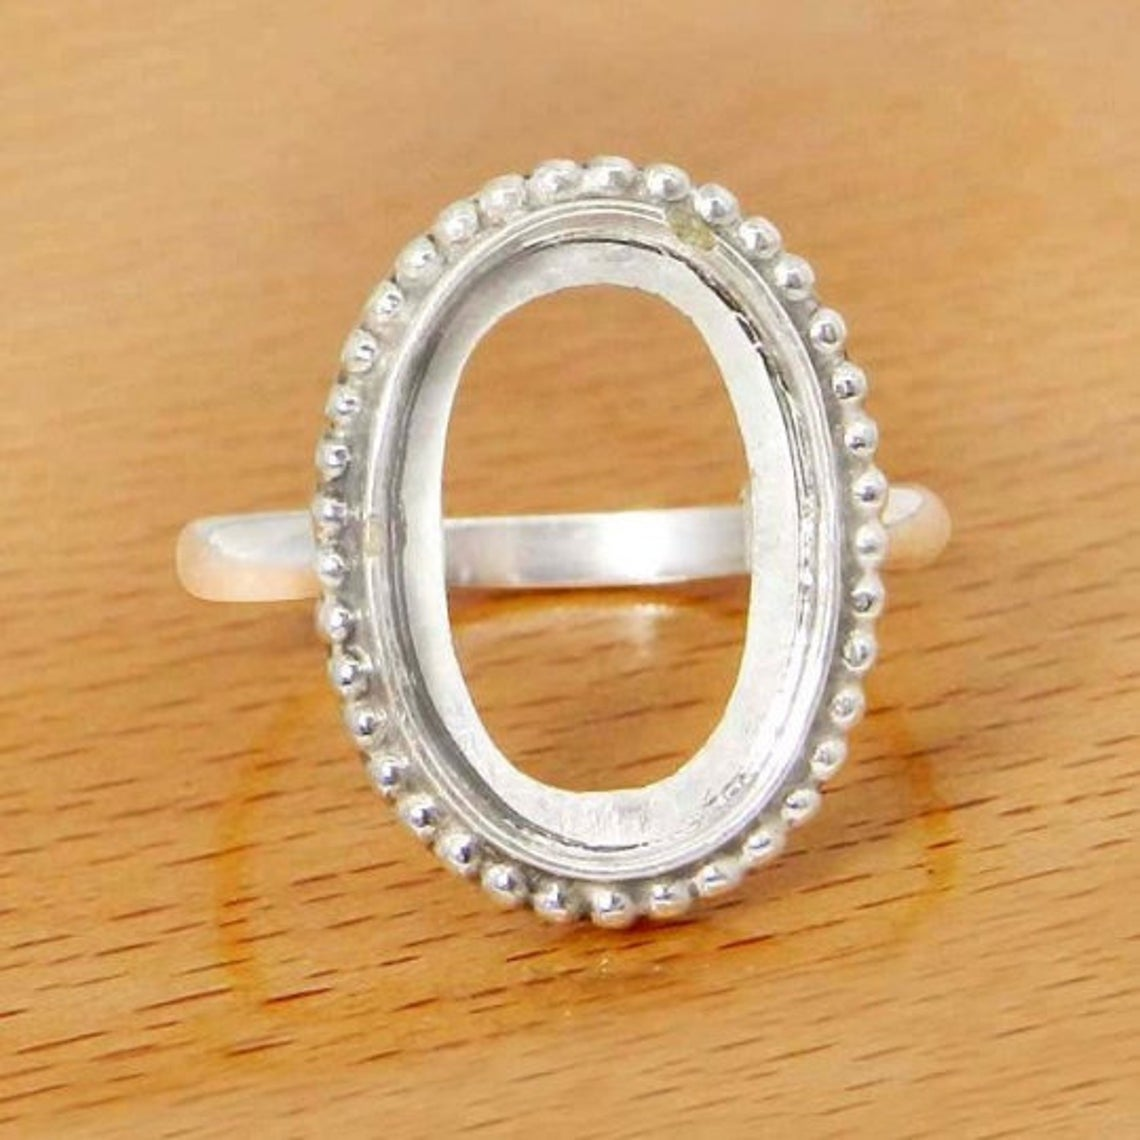 Solid 925 Sterling Silver Blank Ring Collet 6x4mm to 20x15mm Oval Gemstone Bezel Cup For Ring Making Designer Metal Casting For Ring Setting